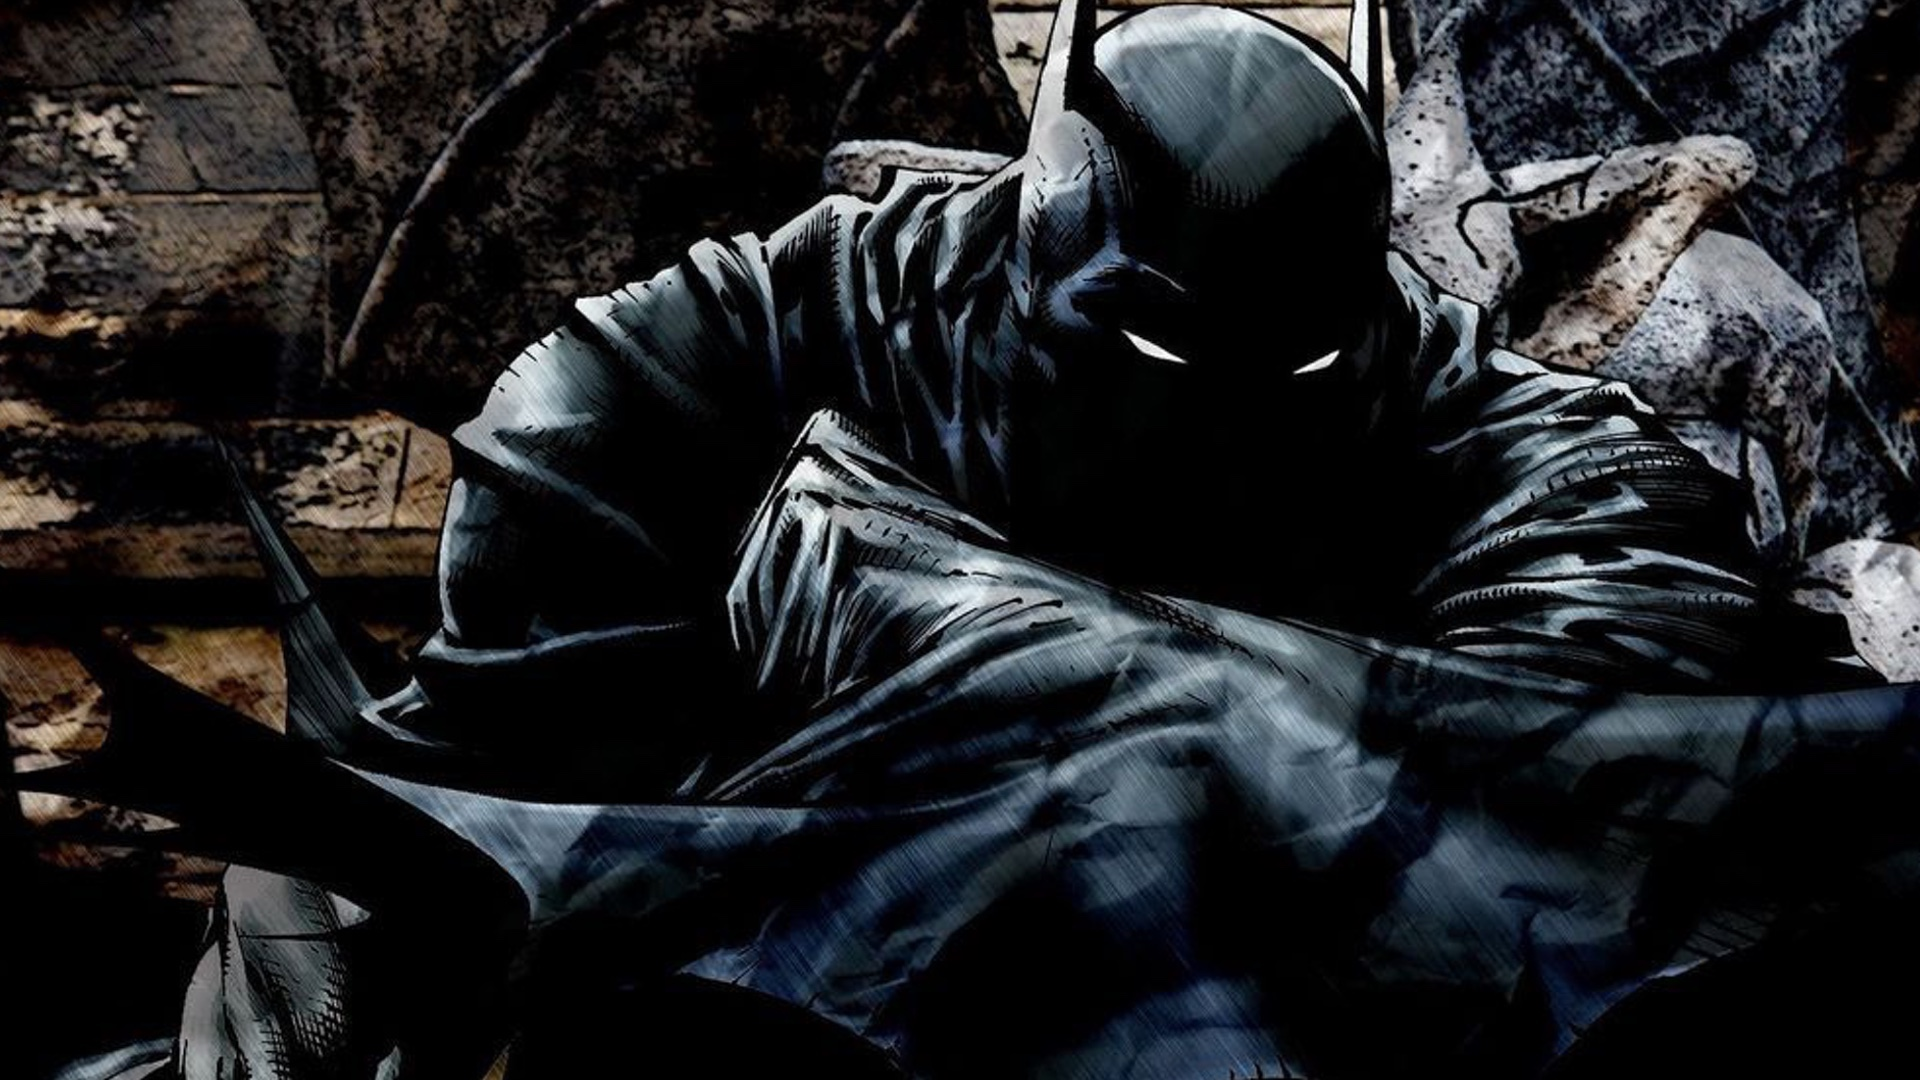 we-may-have-to-wait-longer-than-we-thought-for-matt-reeves-the-batman-movie-social.jpg